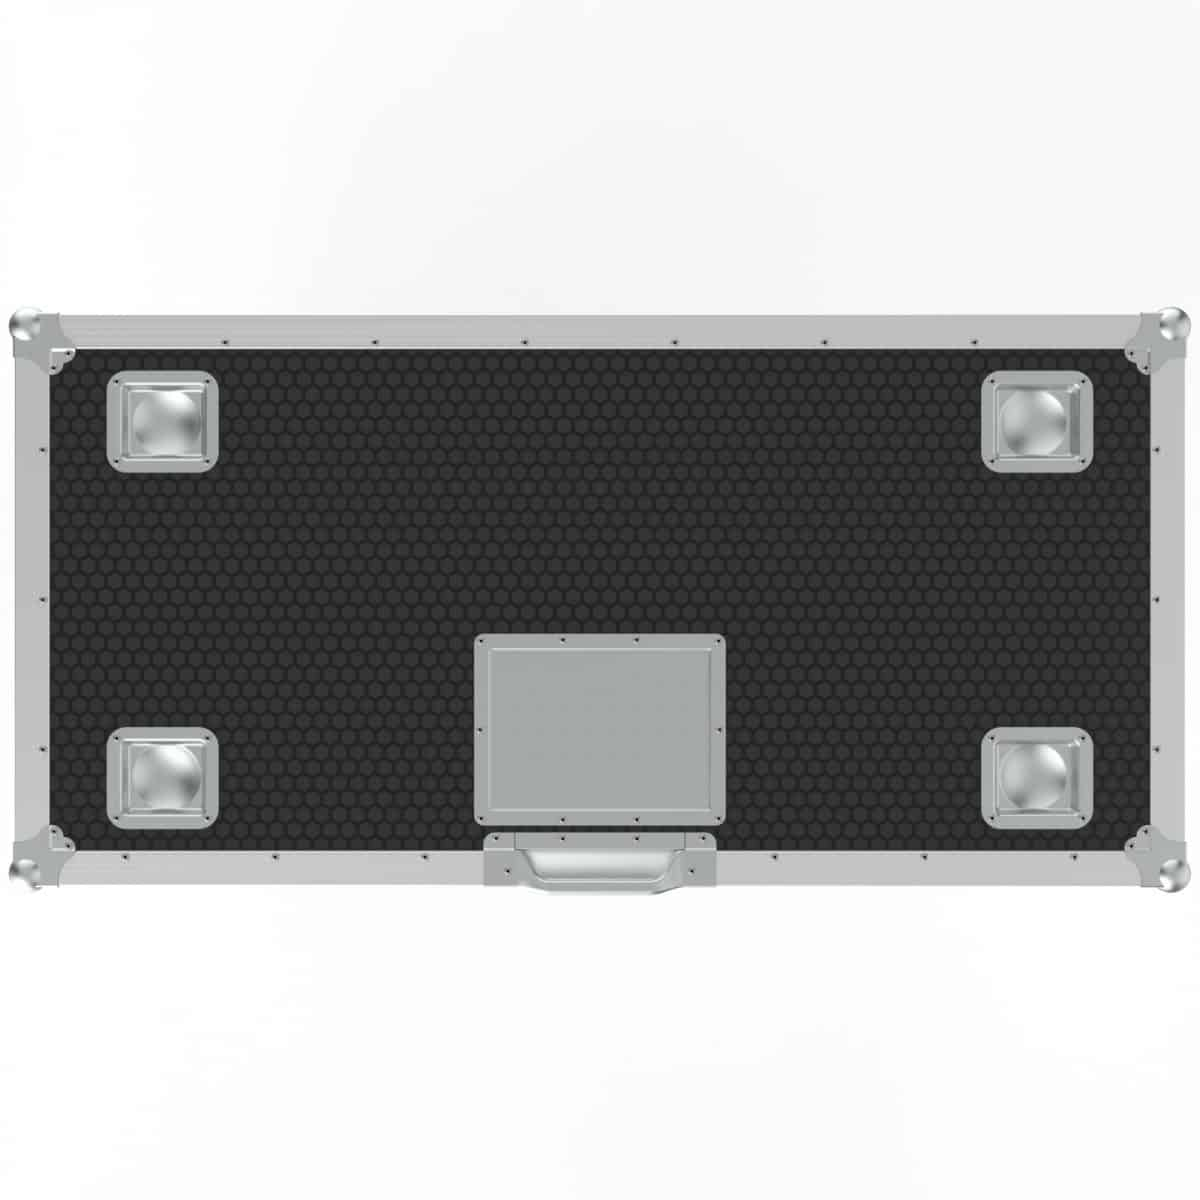 ARMOR CP1200S-S1500 Cable Packer Utility Trunk Road Case